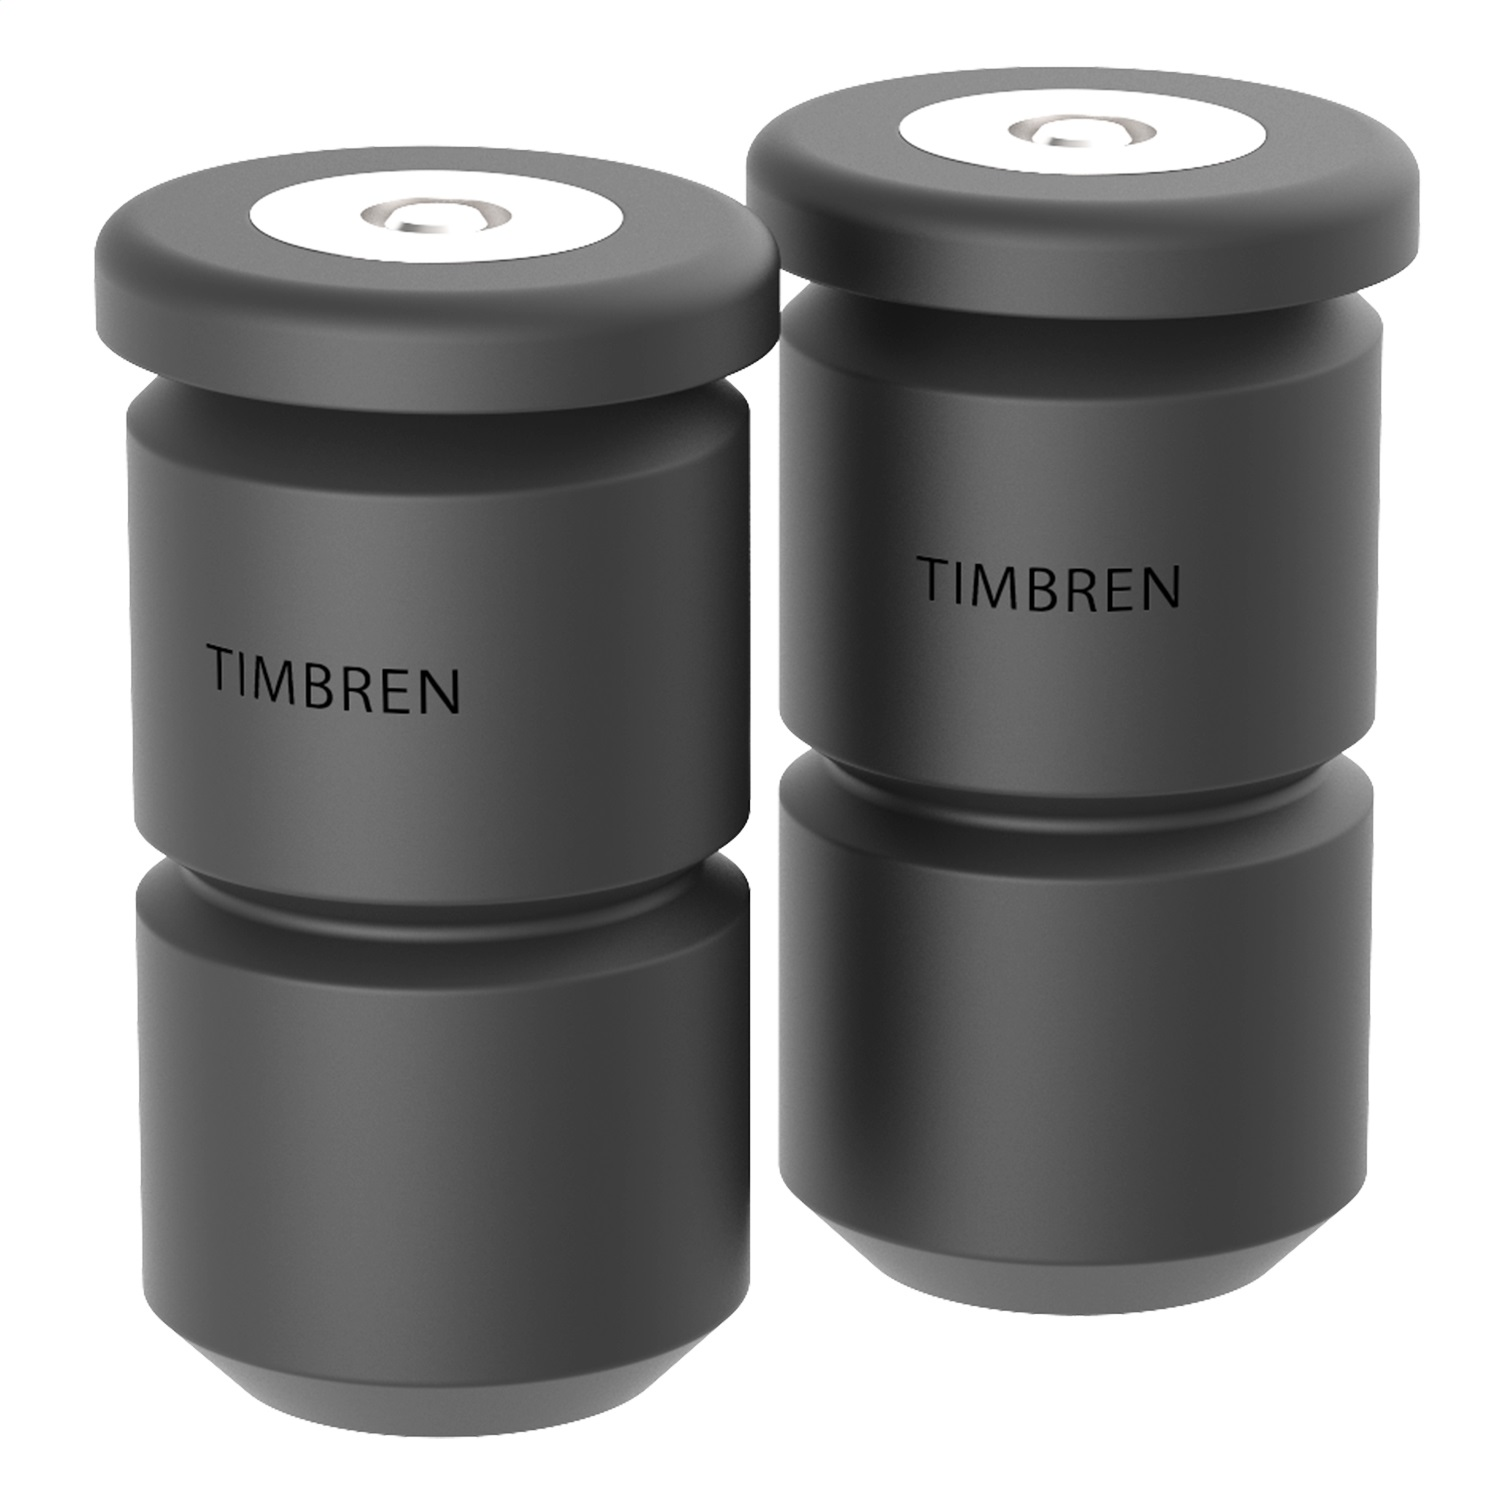 Timbren DR2500CA Suspension Enhancement System Fits 02-13 2500 Ram 1500 Ram 2500